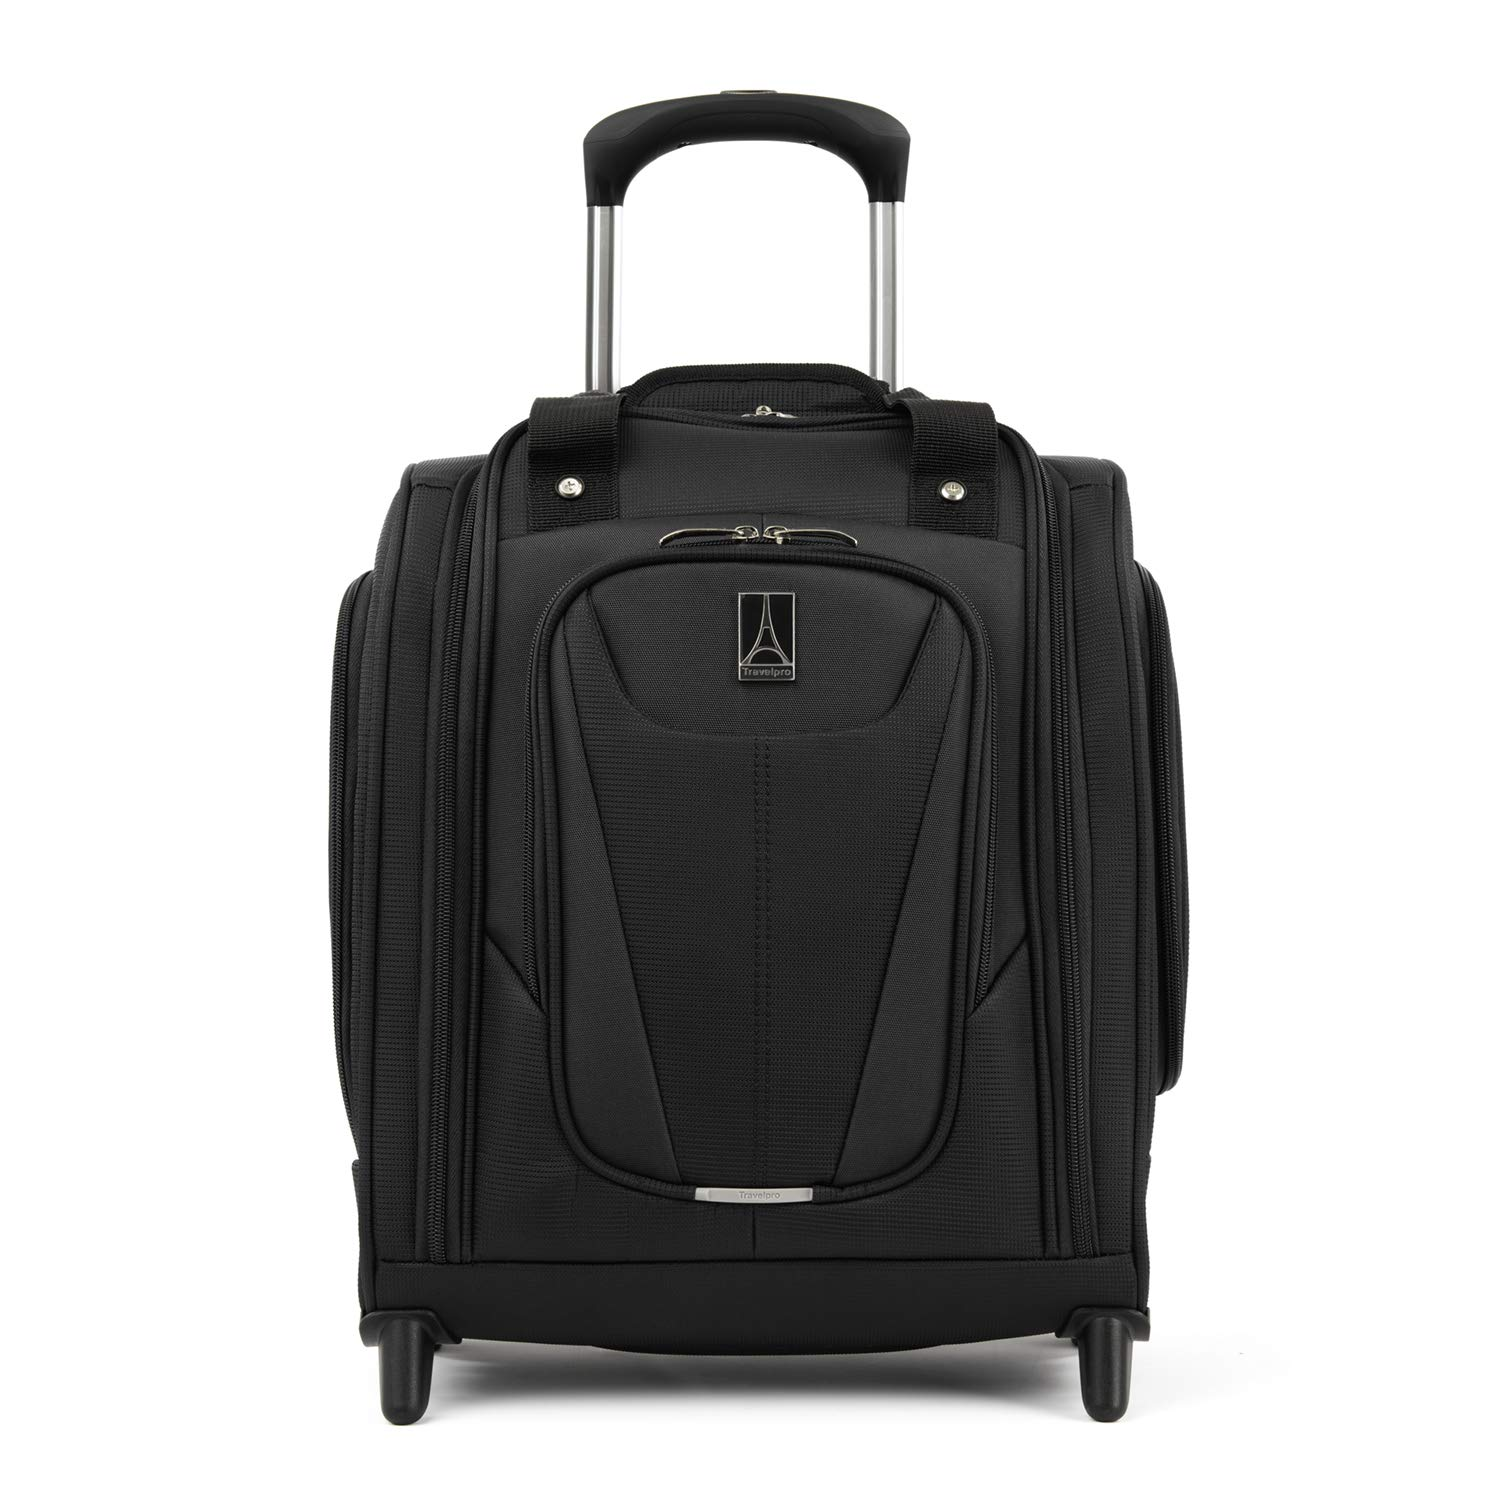 Travelpro Luggage Maxlite 5 15 Lightweight Carry-on Rolling Under Seat Bag, Black